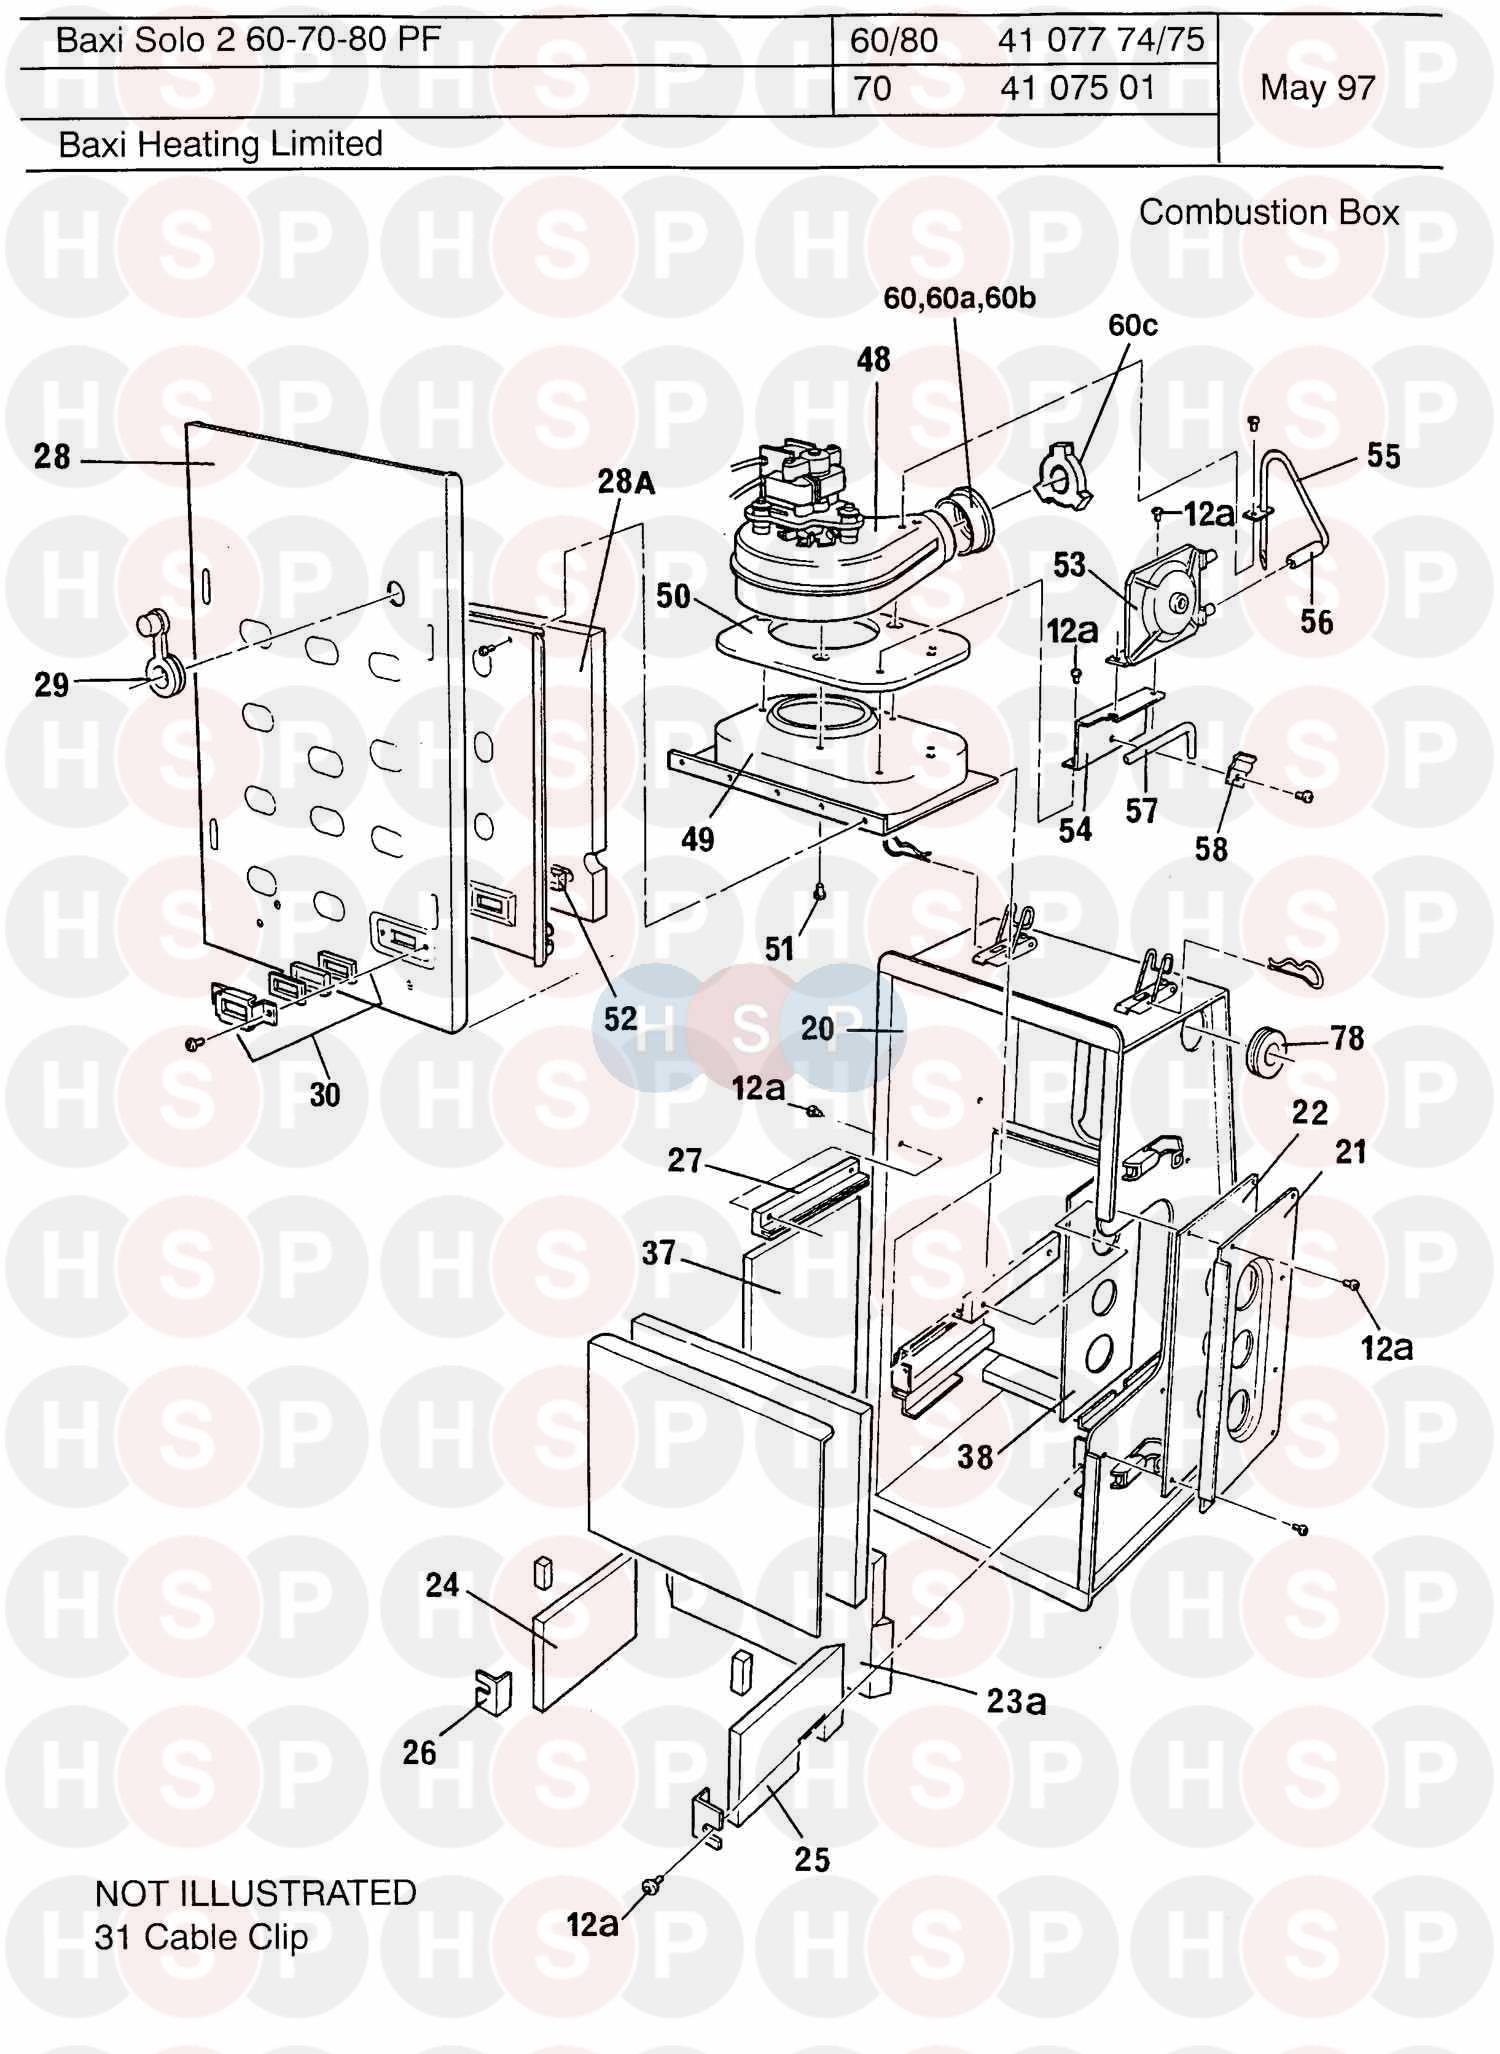 baxi solo pf 2 70 appliance diagram  combustion box